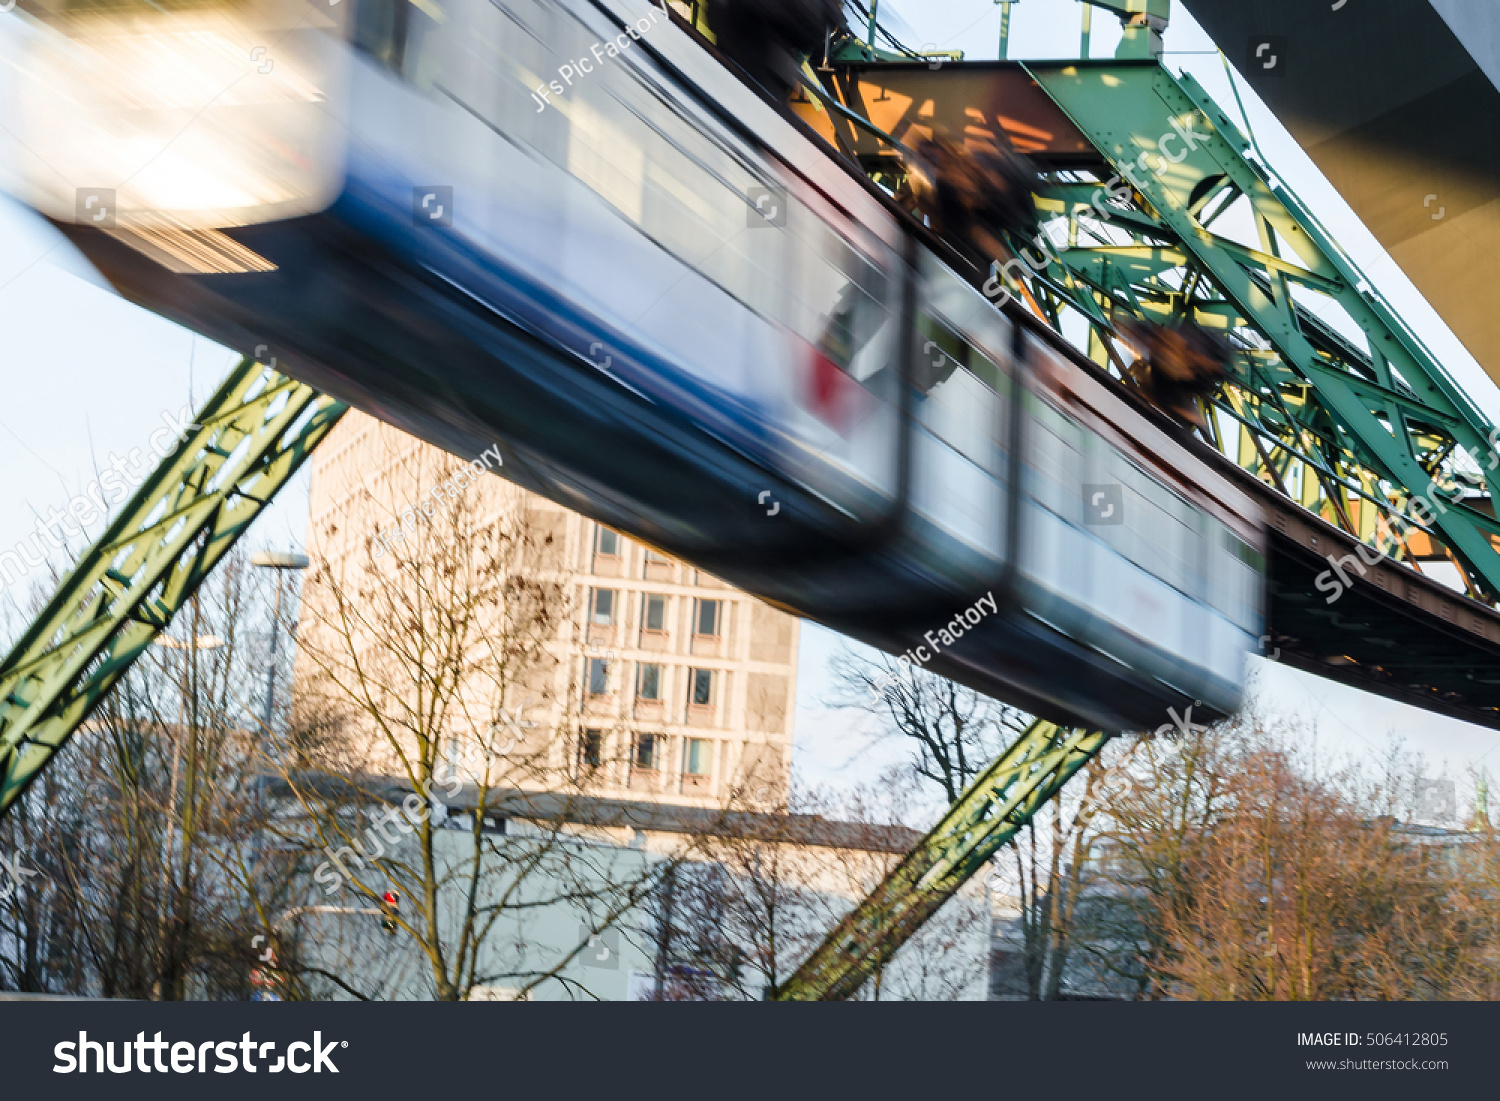 Tomato Wuppertal Motion Blur Intentional Train Wuppertal Suspension Stock Photo